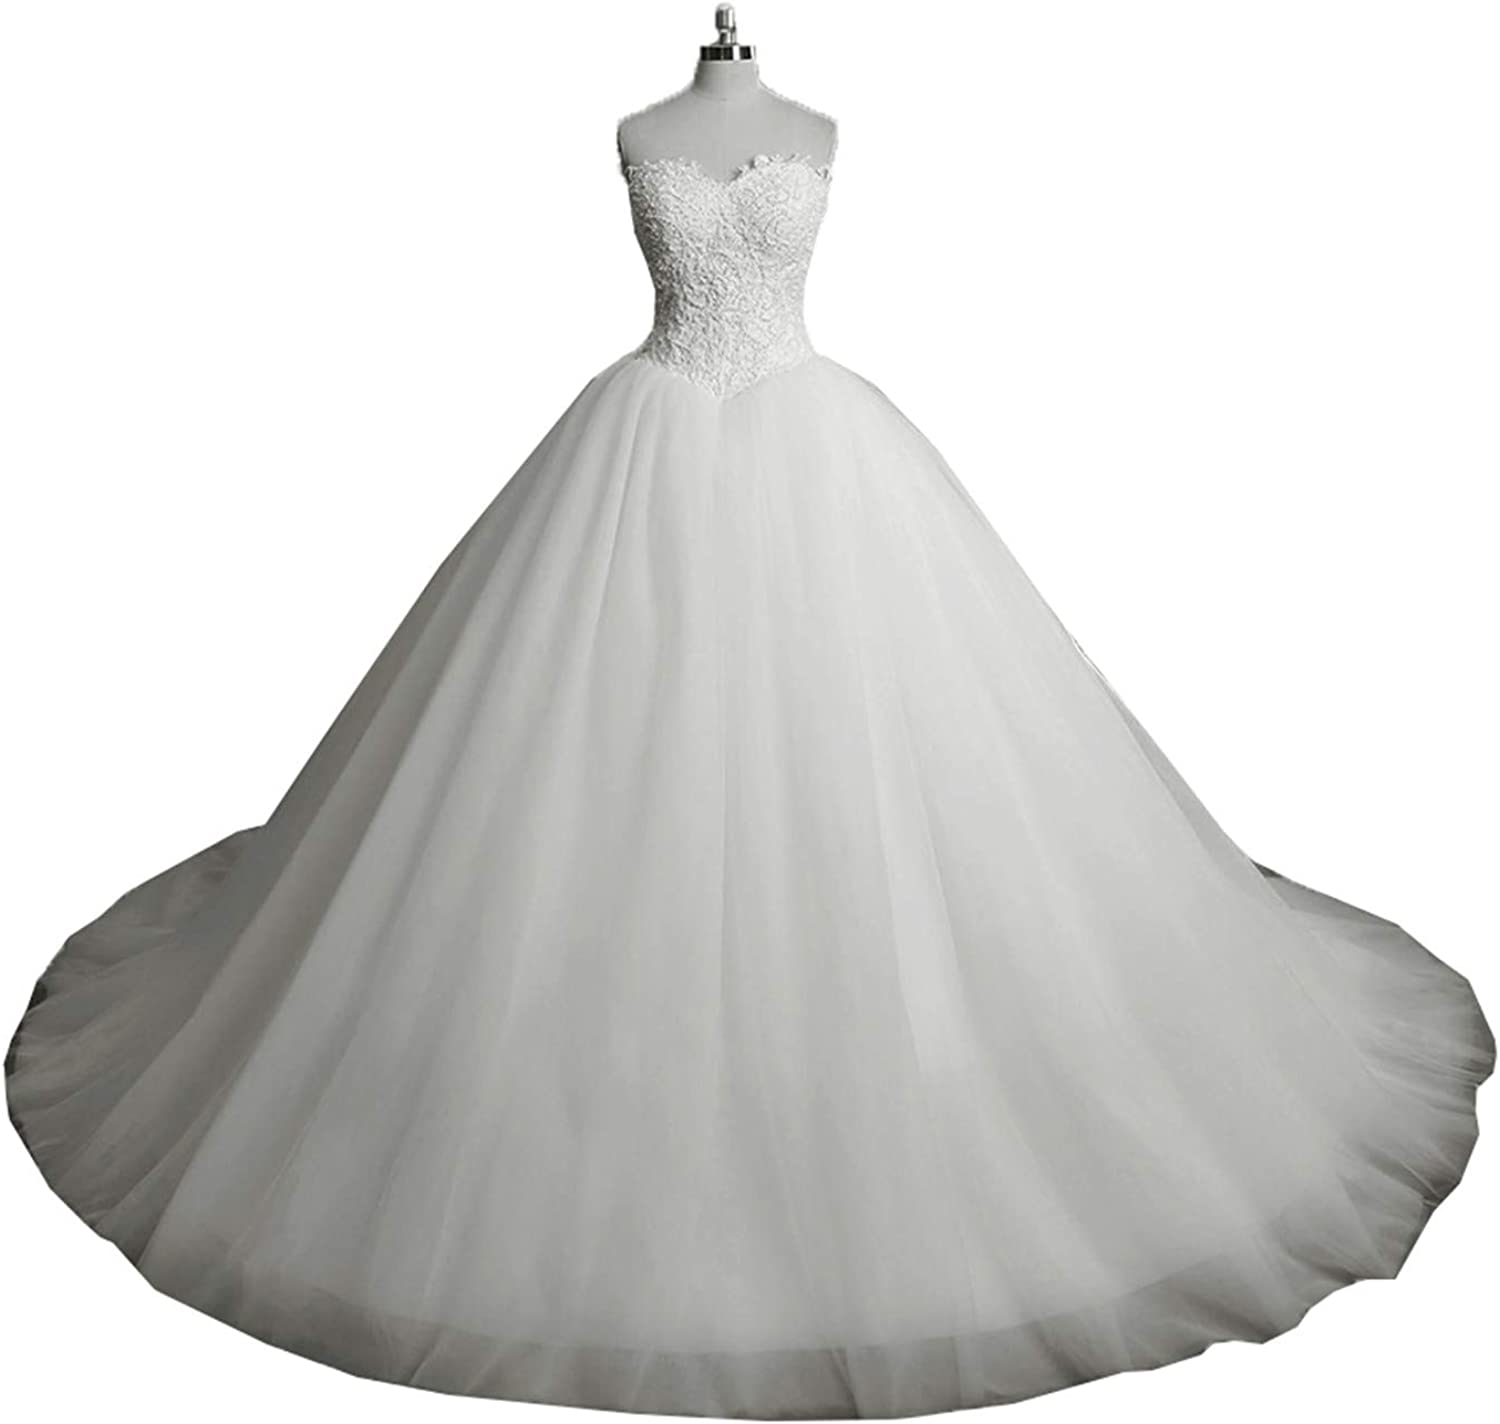 WHZZ Bonnie Beaded Ball Gown Wedding Dresses for Guests Tulle Wedding Gowns